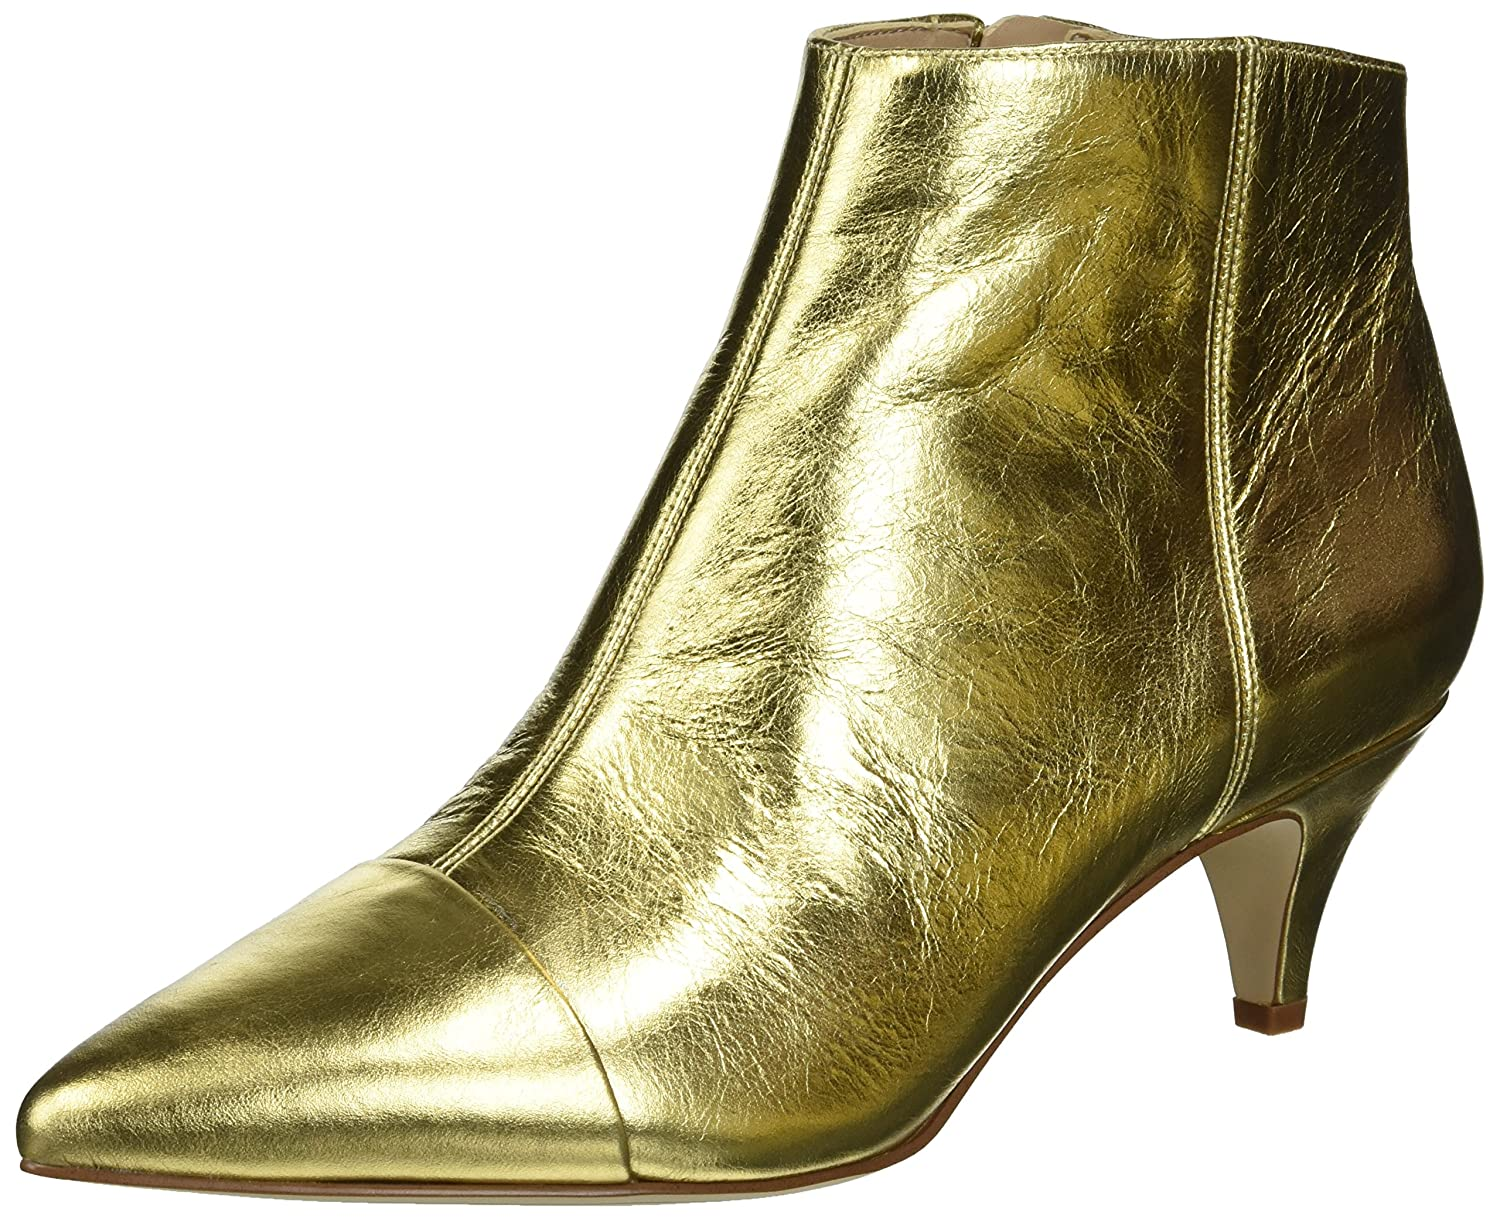 Sam Edelman Women's Kinzey 2 Ankle Boot B07BRCZ8WS 6 M US|Bright Gold/Metallic Distressed Leather